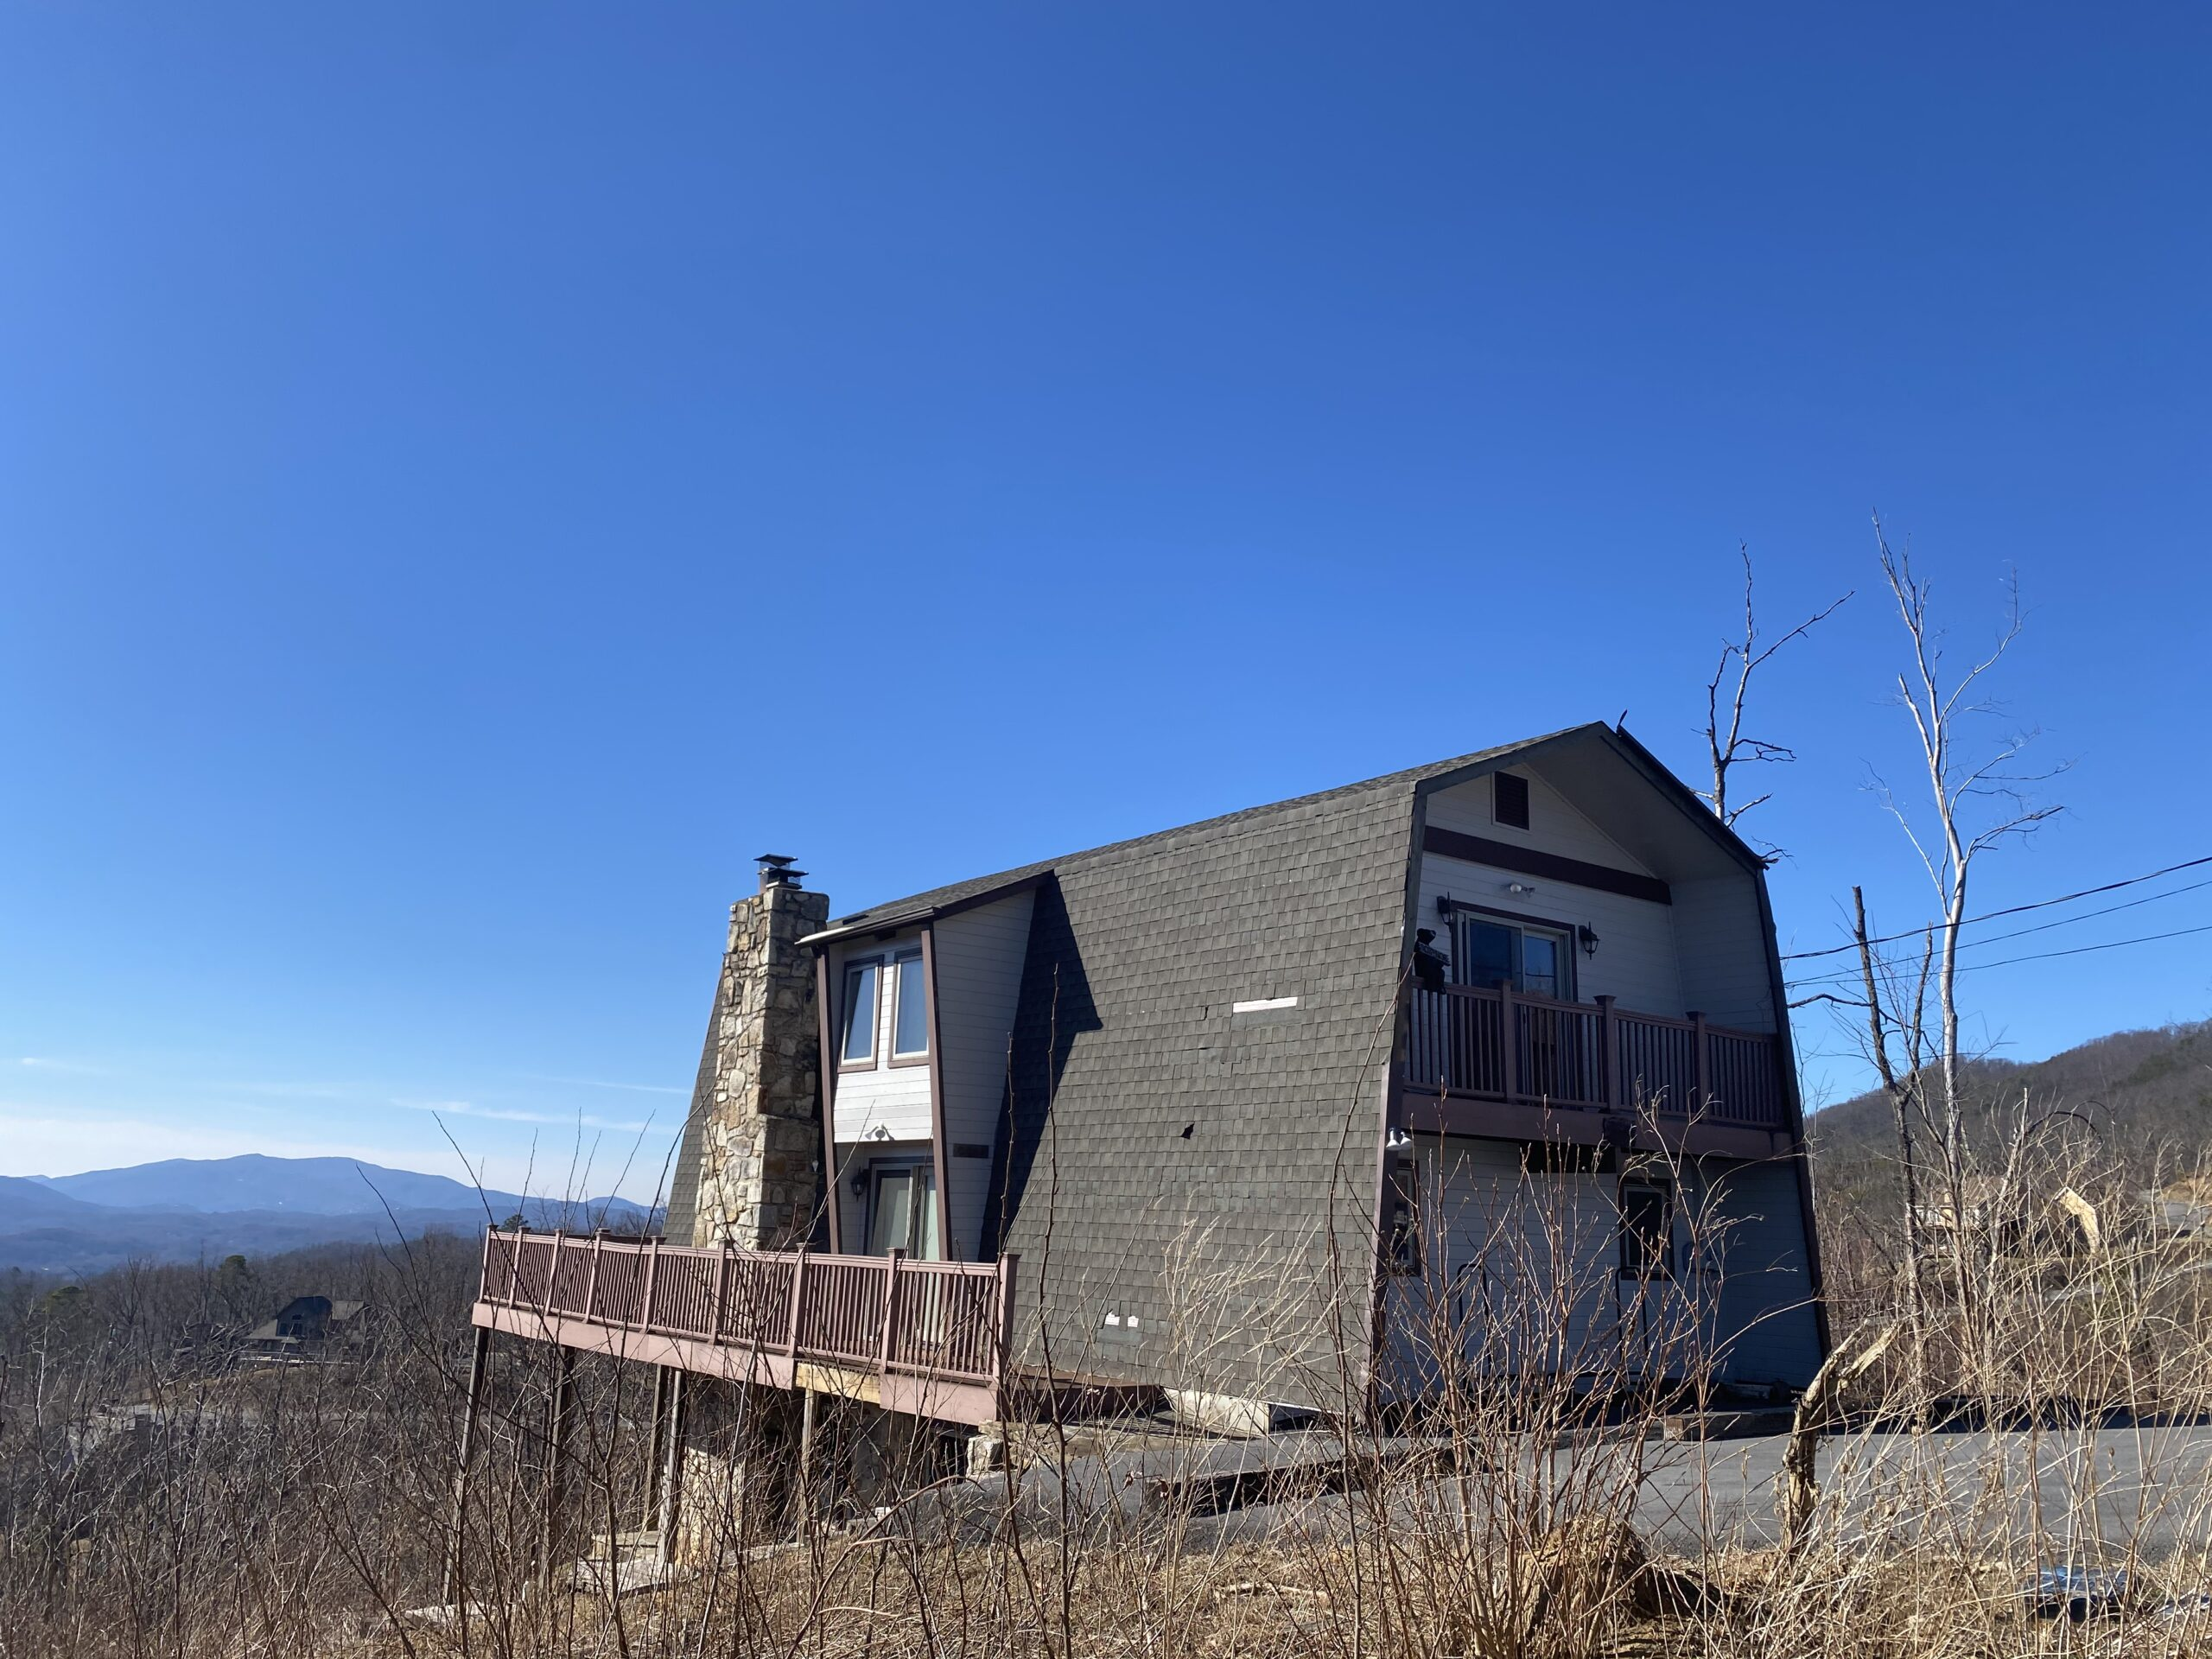 This is a picture of an A frame house on top of a mountain needing a new roof